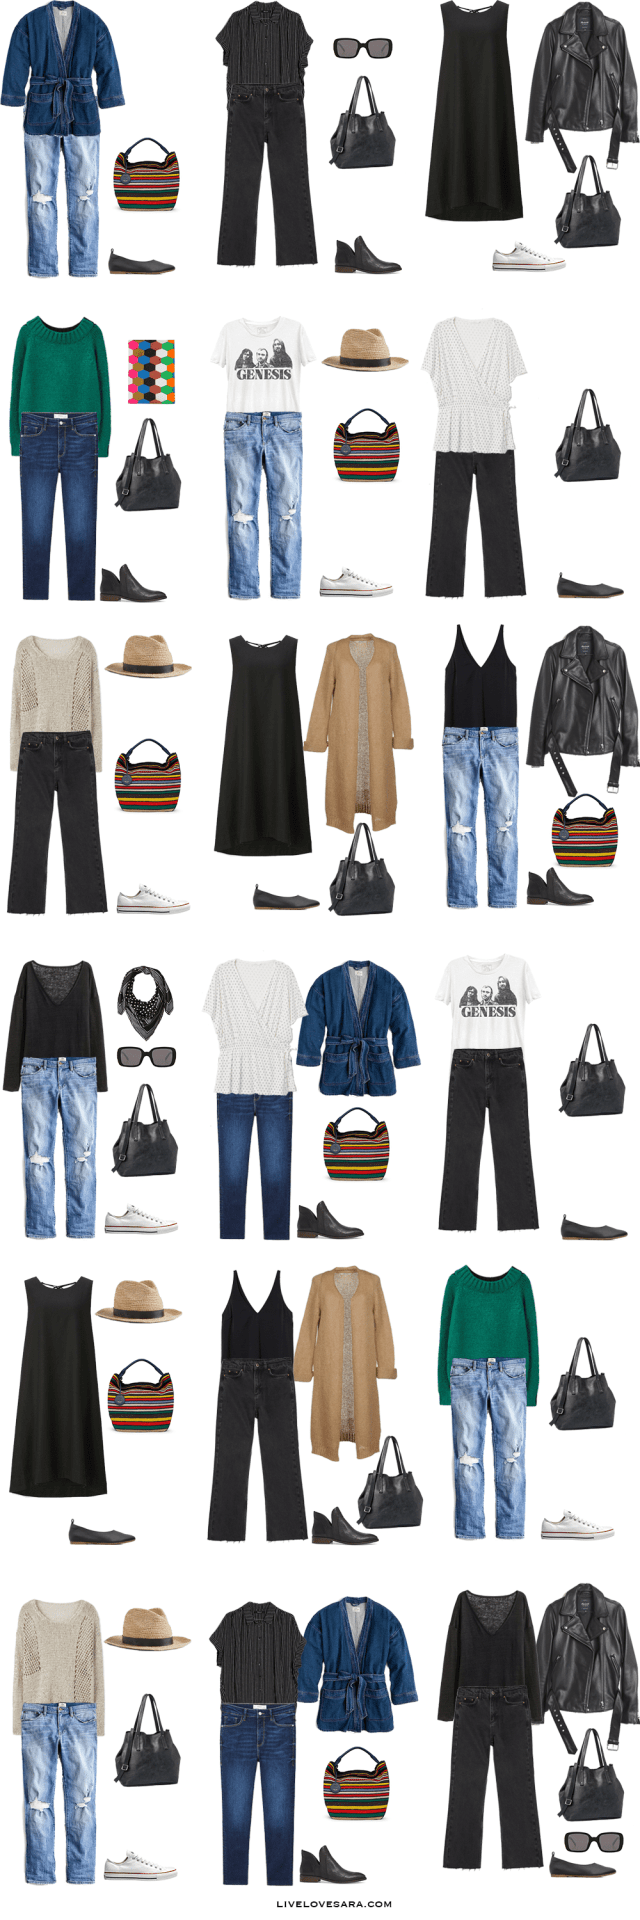 What to Pack for Northern France Packing Light List Outfit Options | What to pack for France | What to Pack for Europe | Packing Light | Packing List | Travel Light | Travel Wardrobe | Travel Capsule | Capsule |